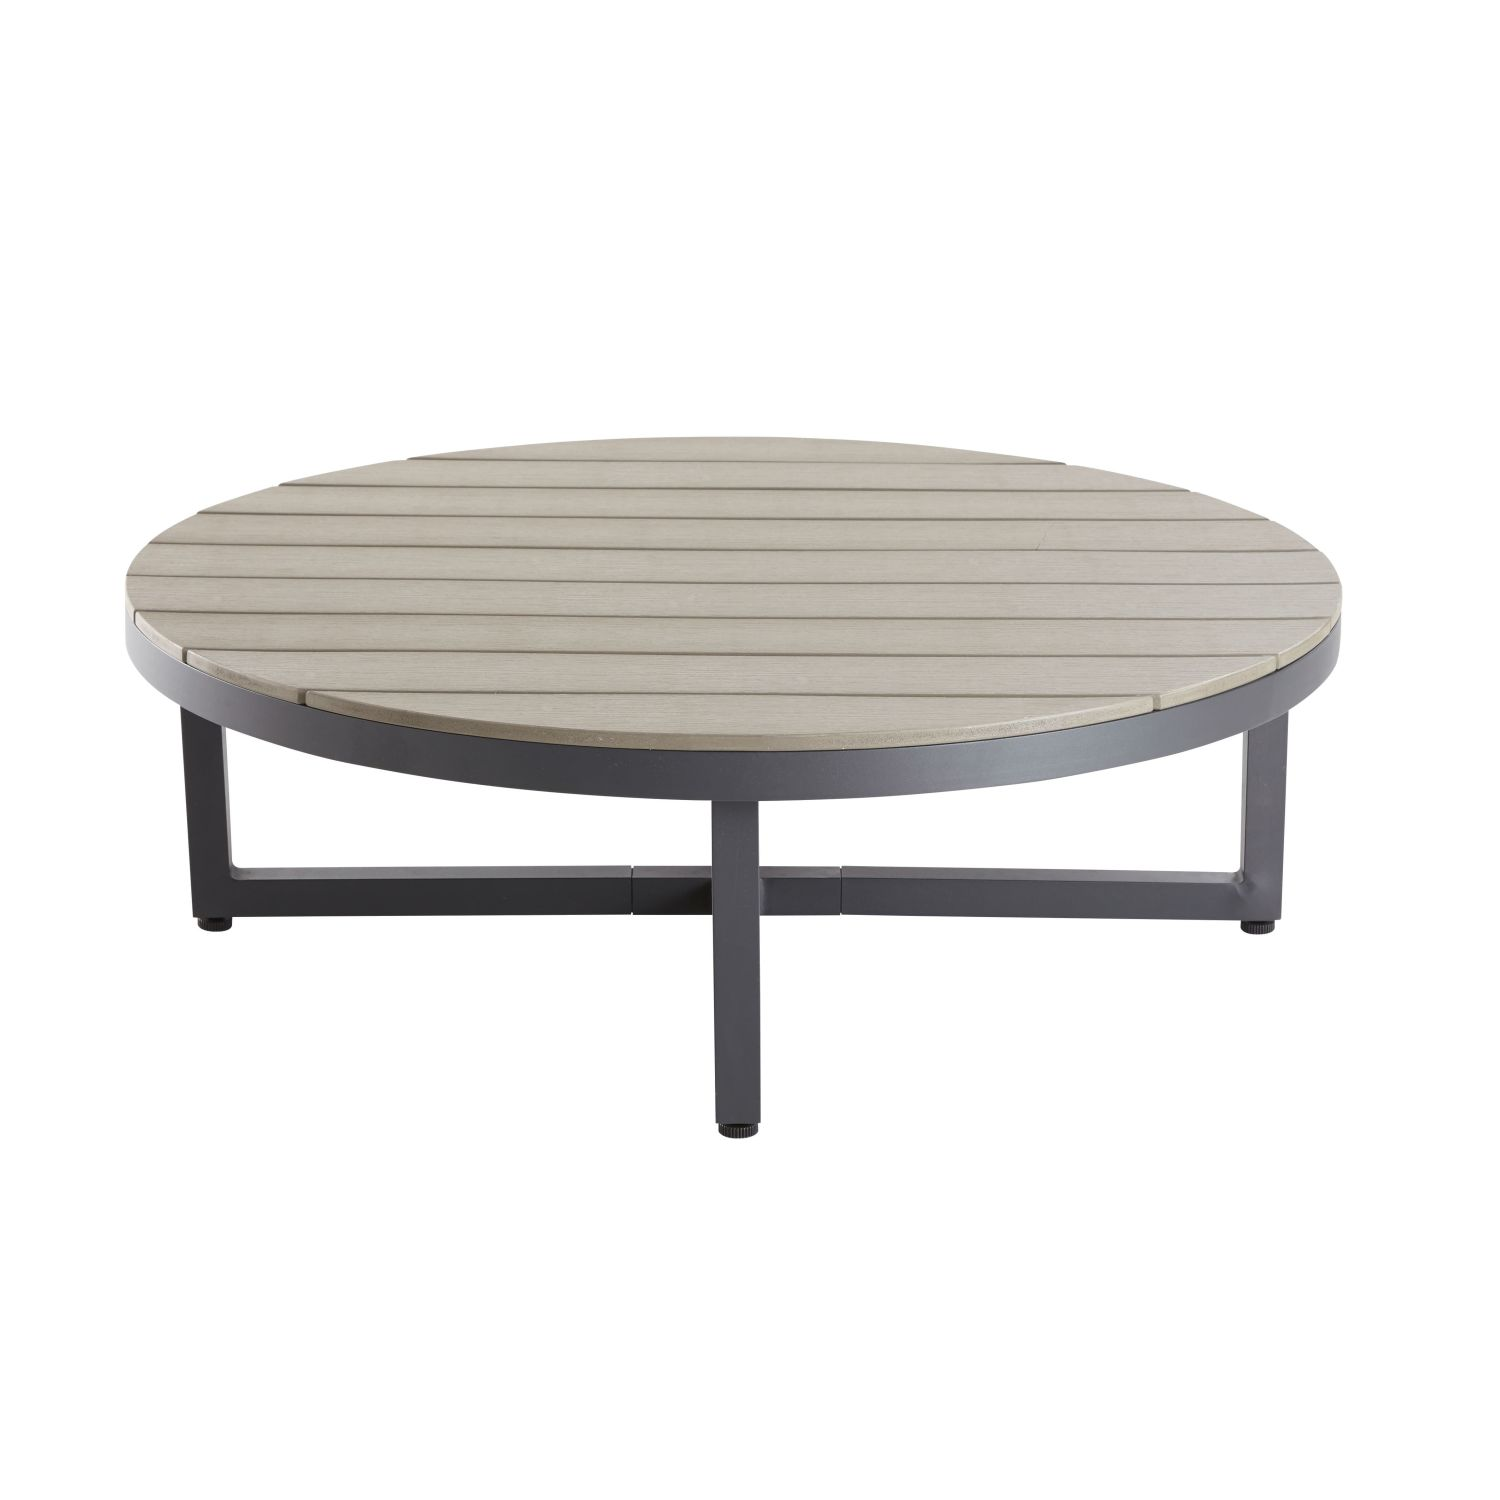 table basse de jardin ronde en composite et aluminium maisons du monde. Black Bedroom Furniture Sets. Home Design Ideas